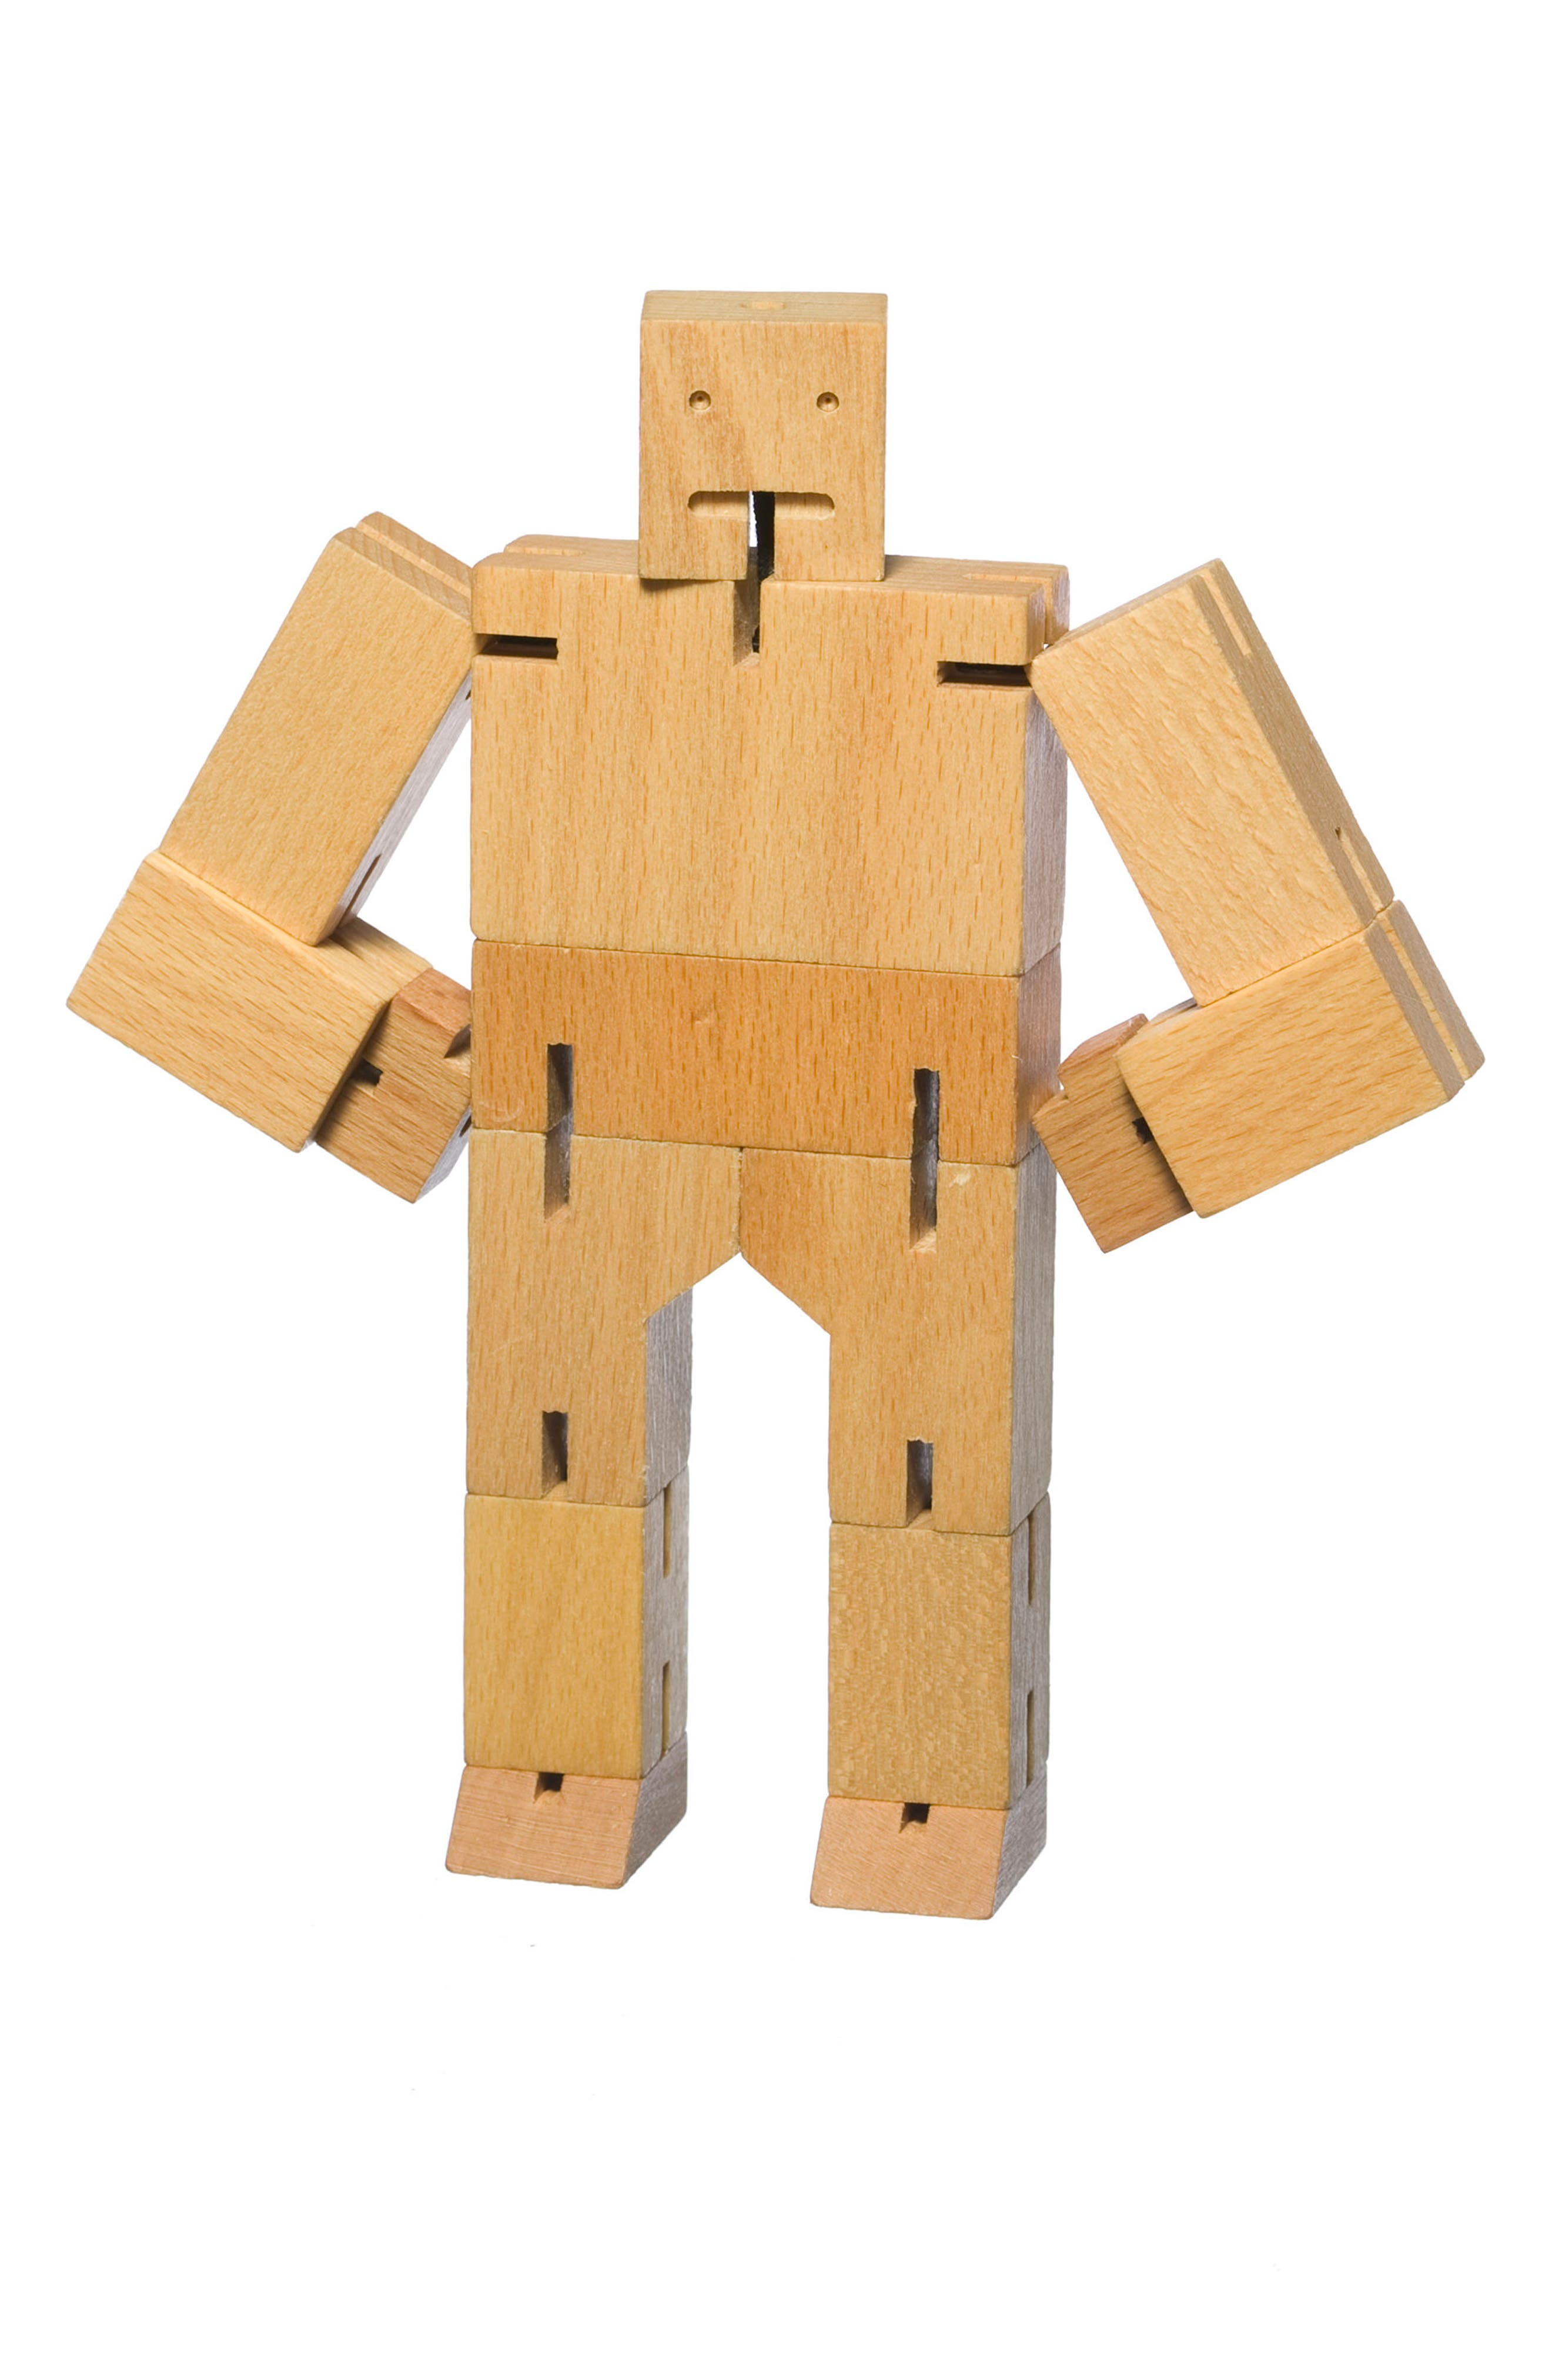 Cubebot Small Wooden Robot Toy,                             Alternate thumbnail 2, color,                             200